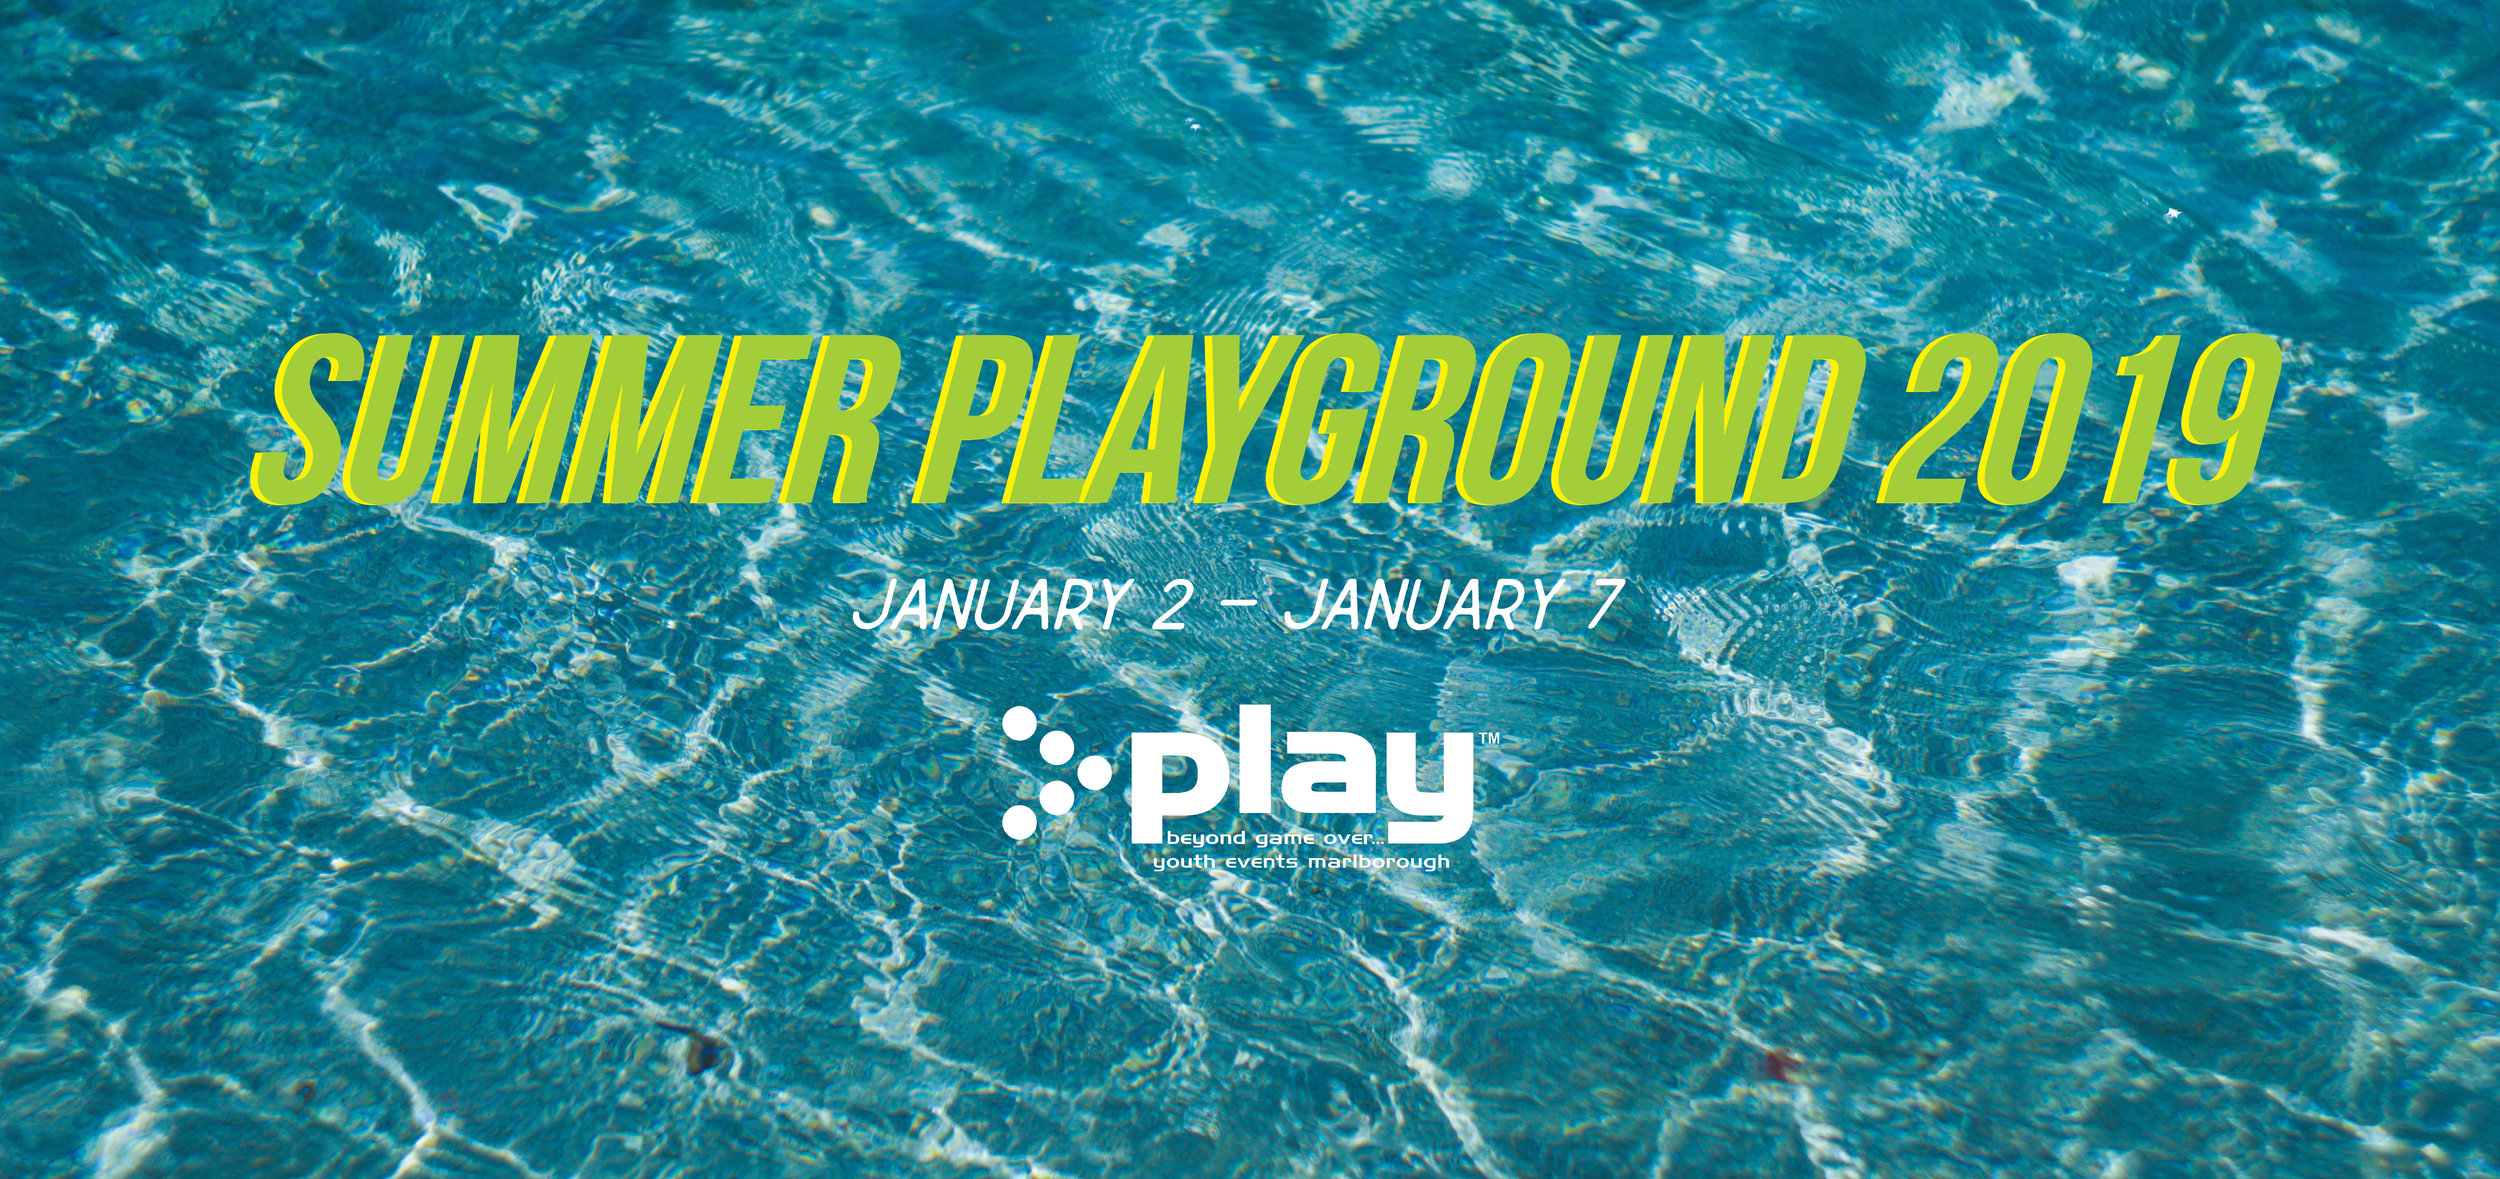 Check out the Summer Playground Facebook page for more information and to register  www.facebook.com/summerplayground